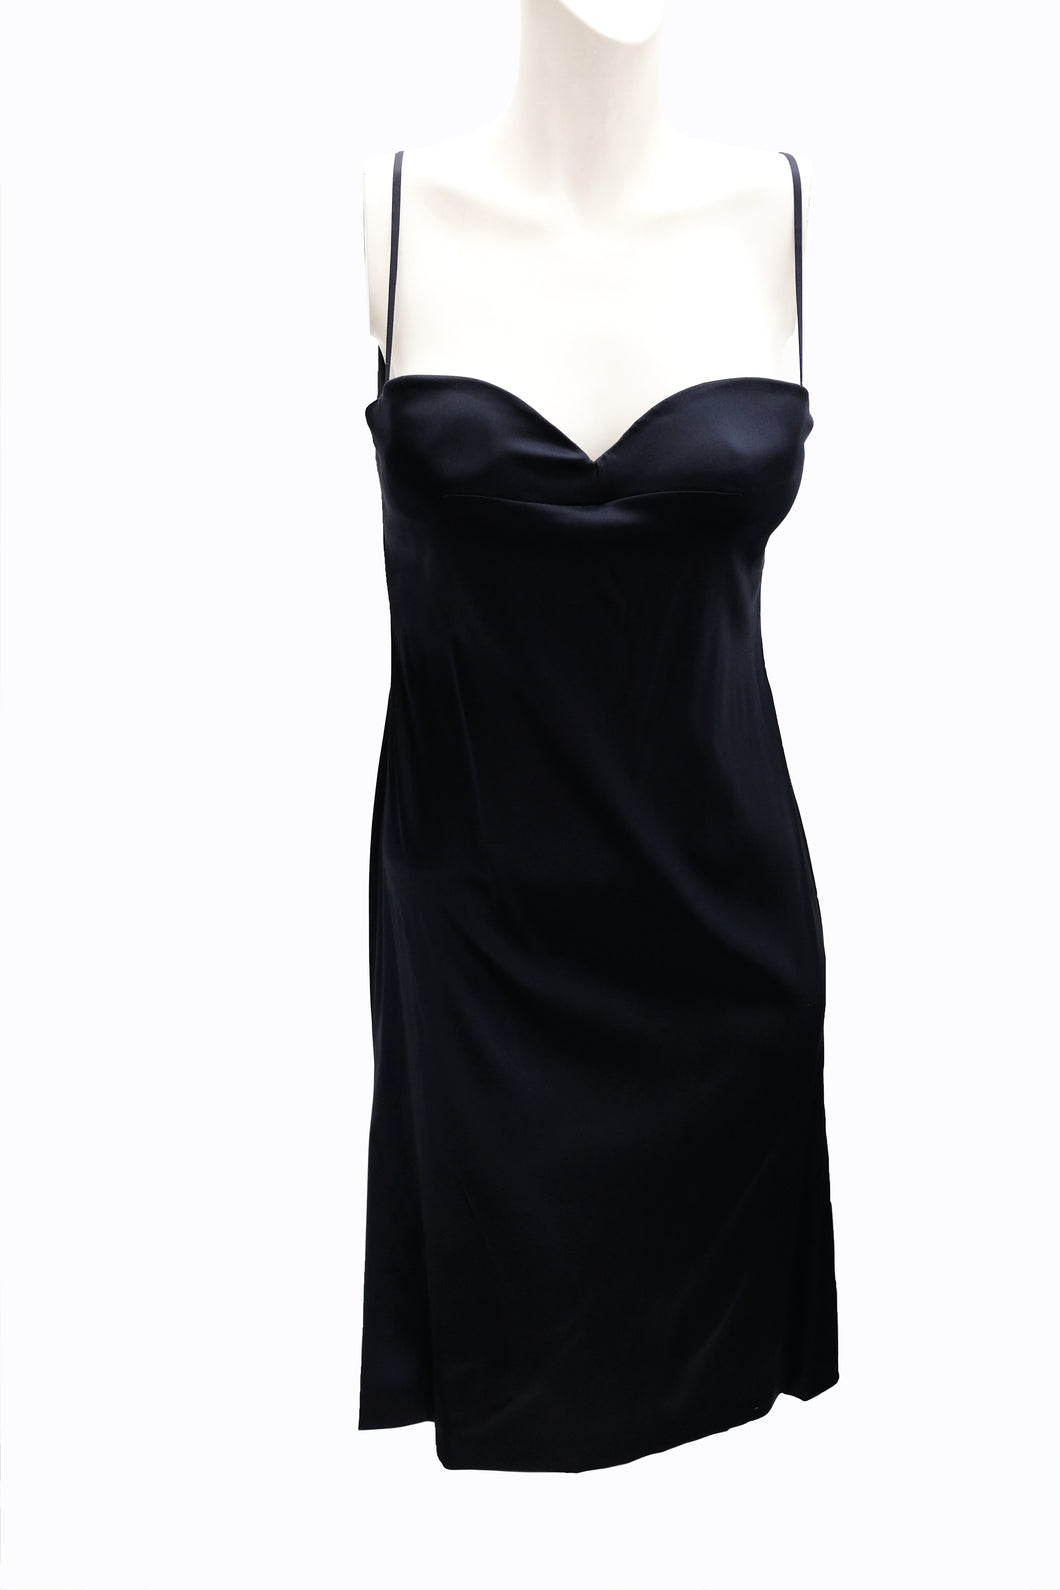 Alberta Ferretti Vintage Slip Dress in Midnight Blue Silk Satin, UK10